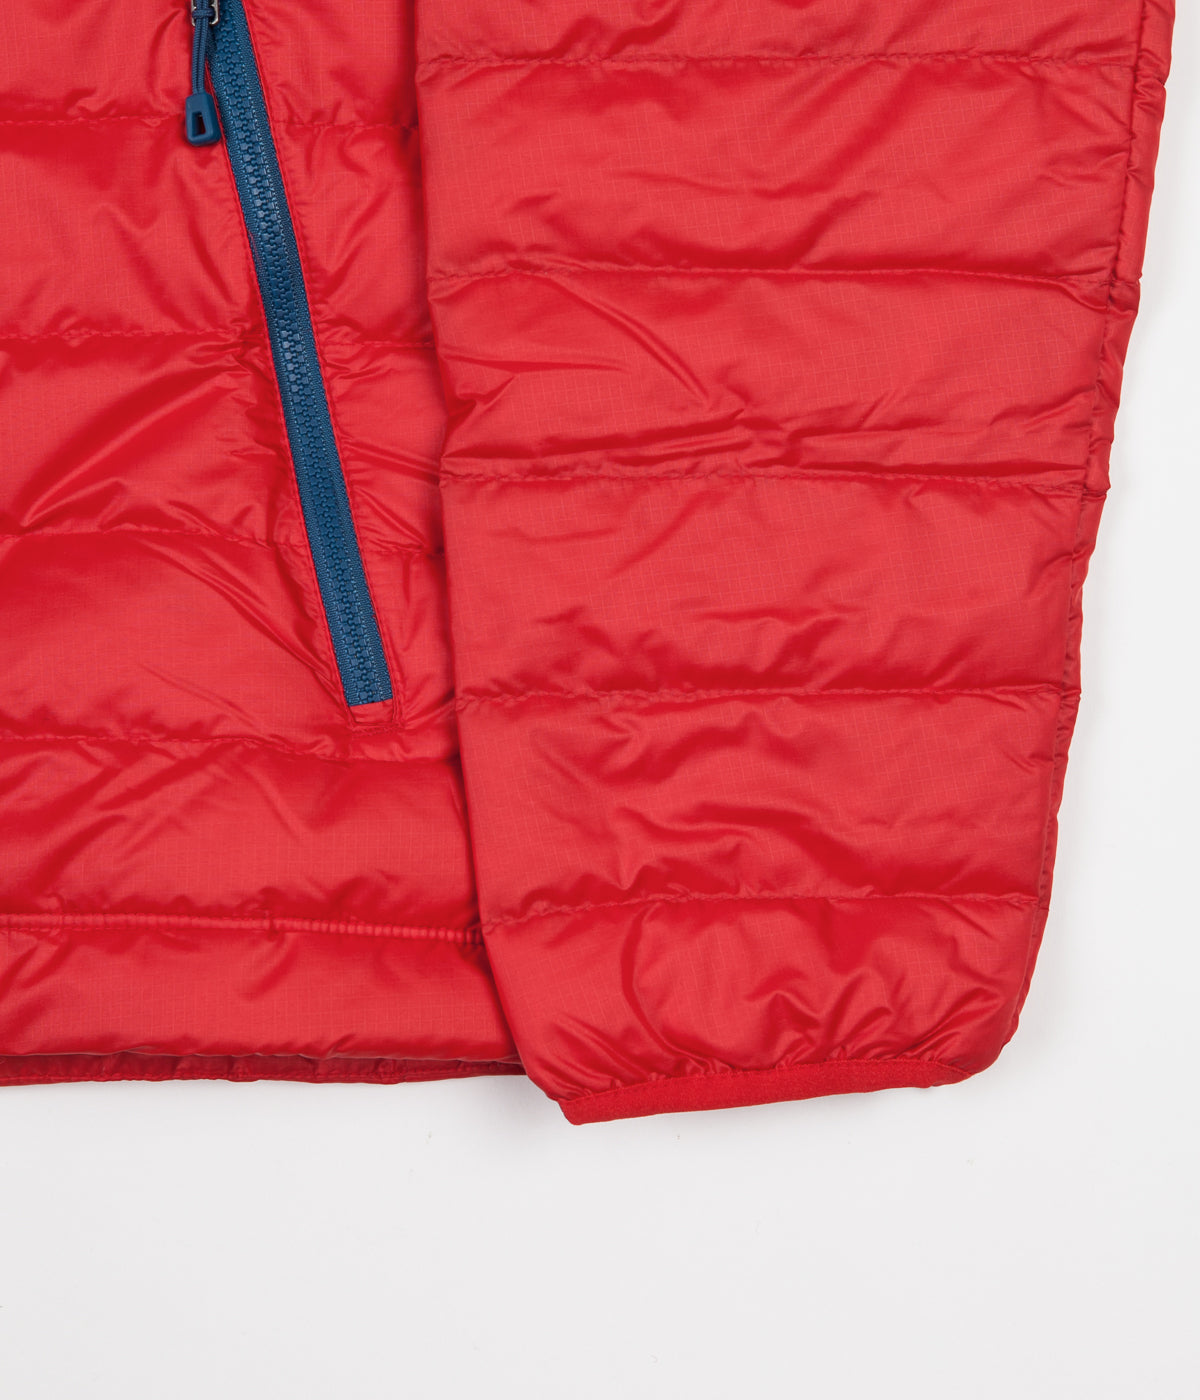 Patagonia Down Sweater Hooded Jacket - Fire